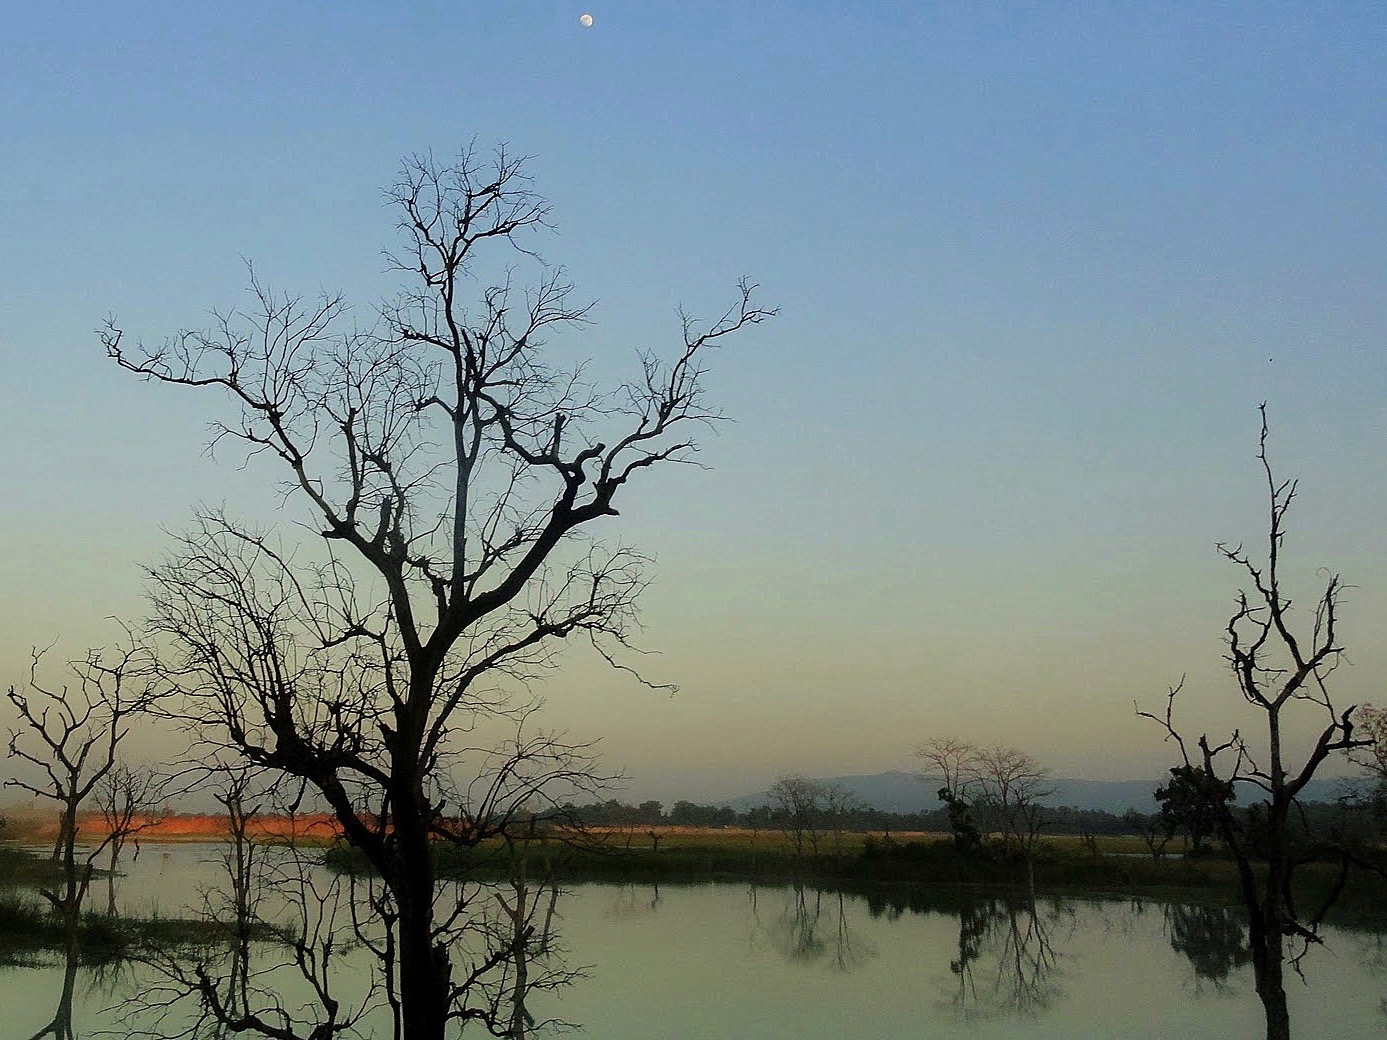 Trees wither along the shore of a coal-ash pond. (Wikimedia Commons/Ansh Mishra)